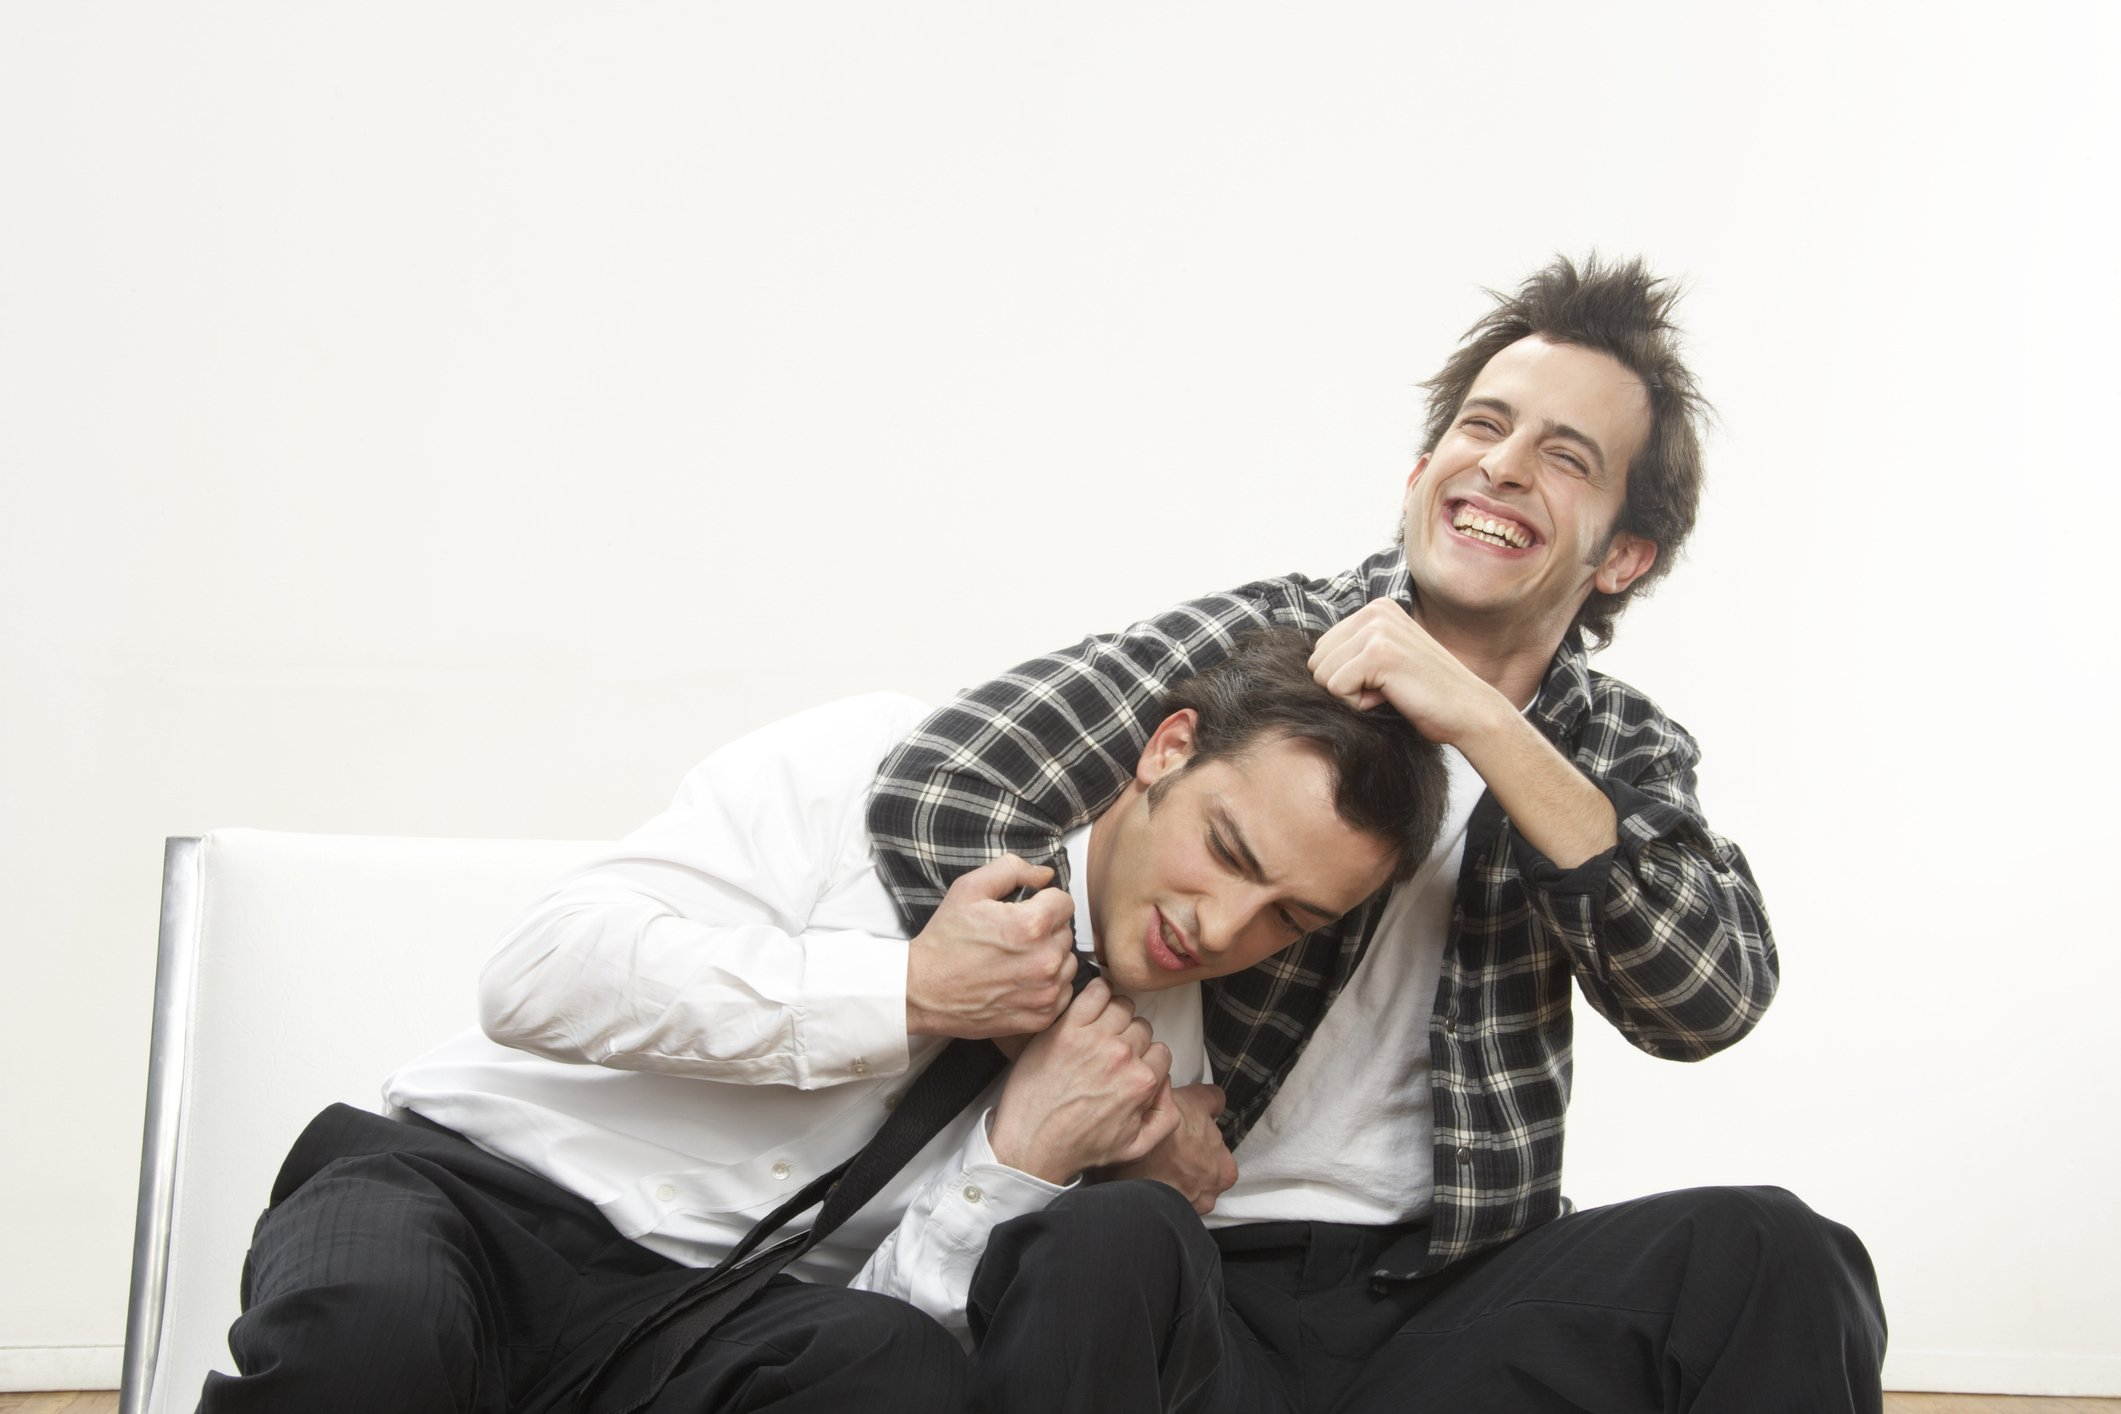 Twin brothers seated on a couch laugh out loud about something hilarious   Photo: Getty Images